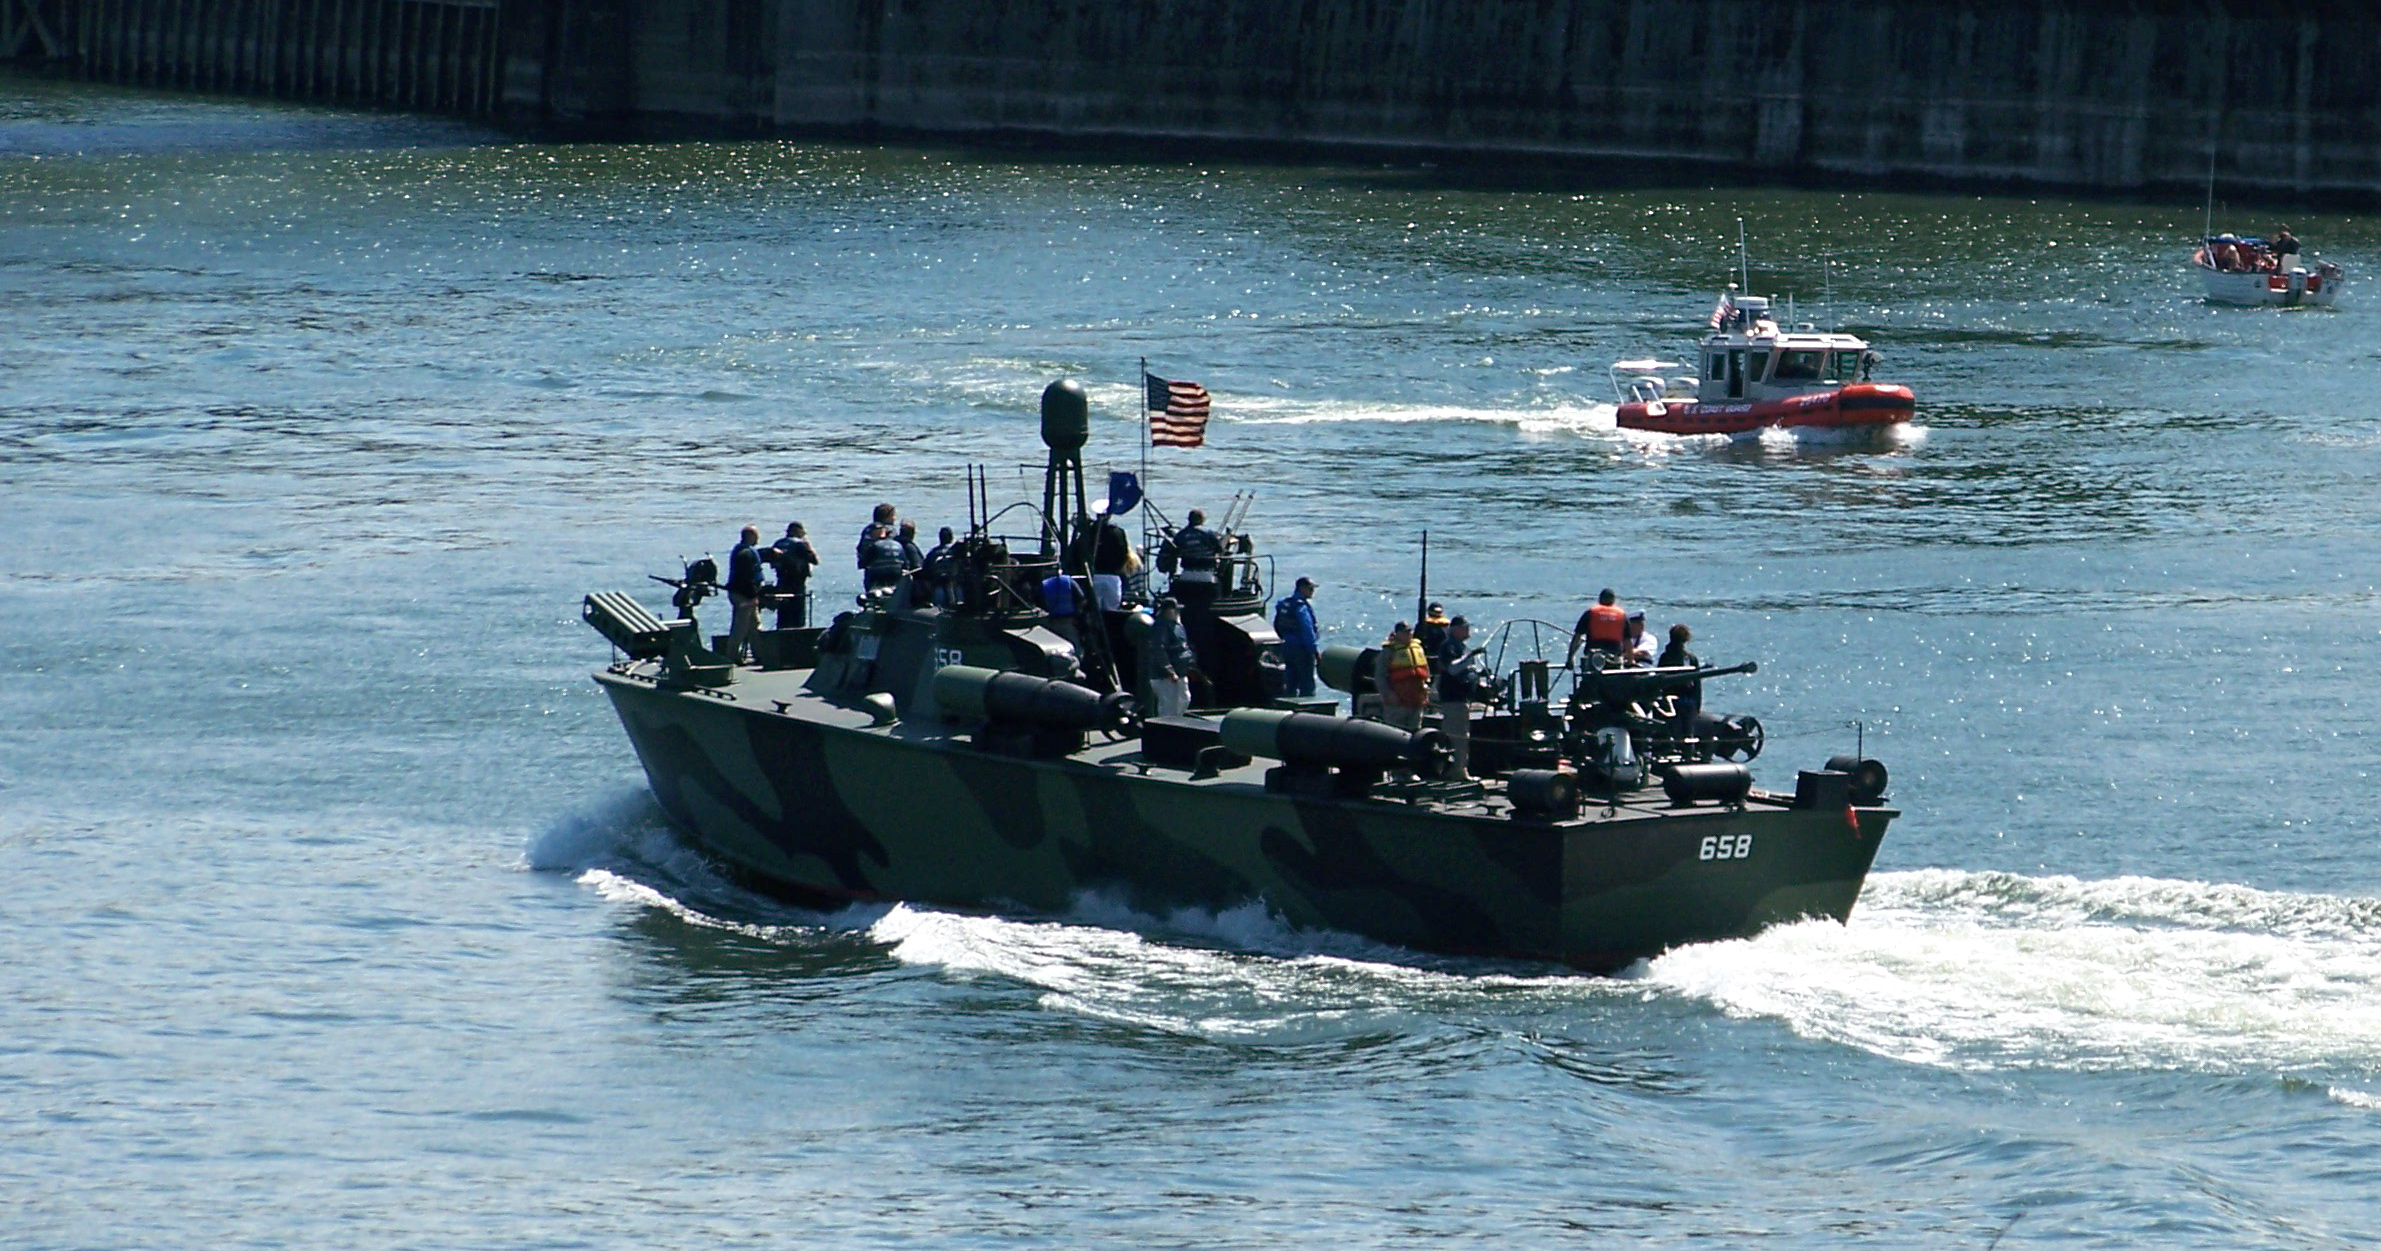 File:PT-658 and USCG response boat.JPG - Wikimedia Commons